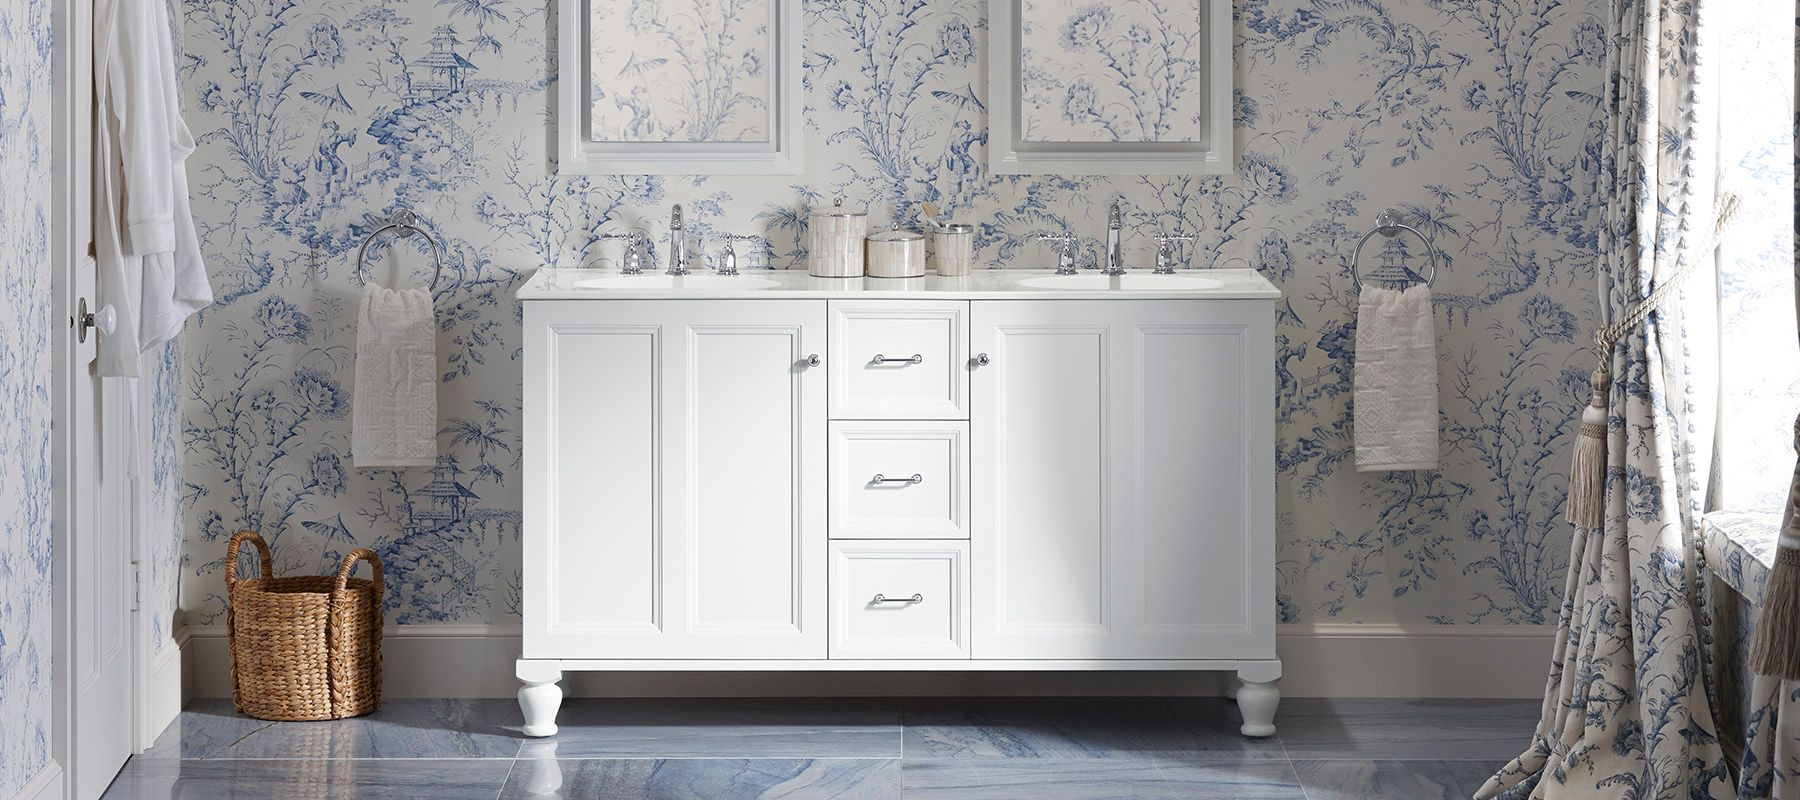 Bathroom Vanity Homey Ideas Bathroom Vanity Collections Vanities KOHLER  Home Fashionable Bathroom Vanity Collections On Bathroom